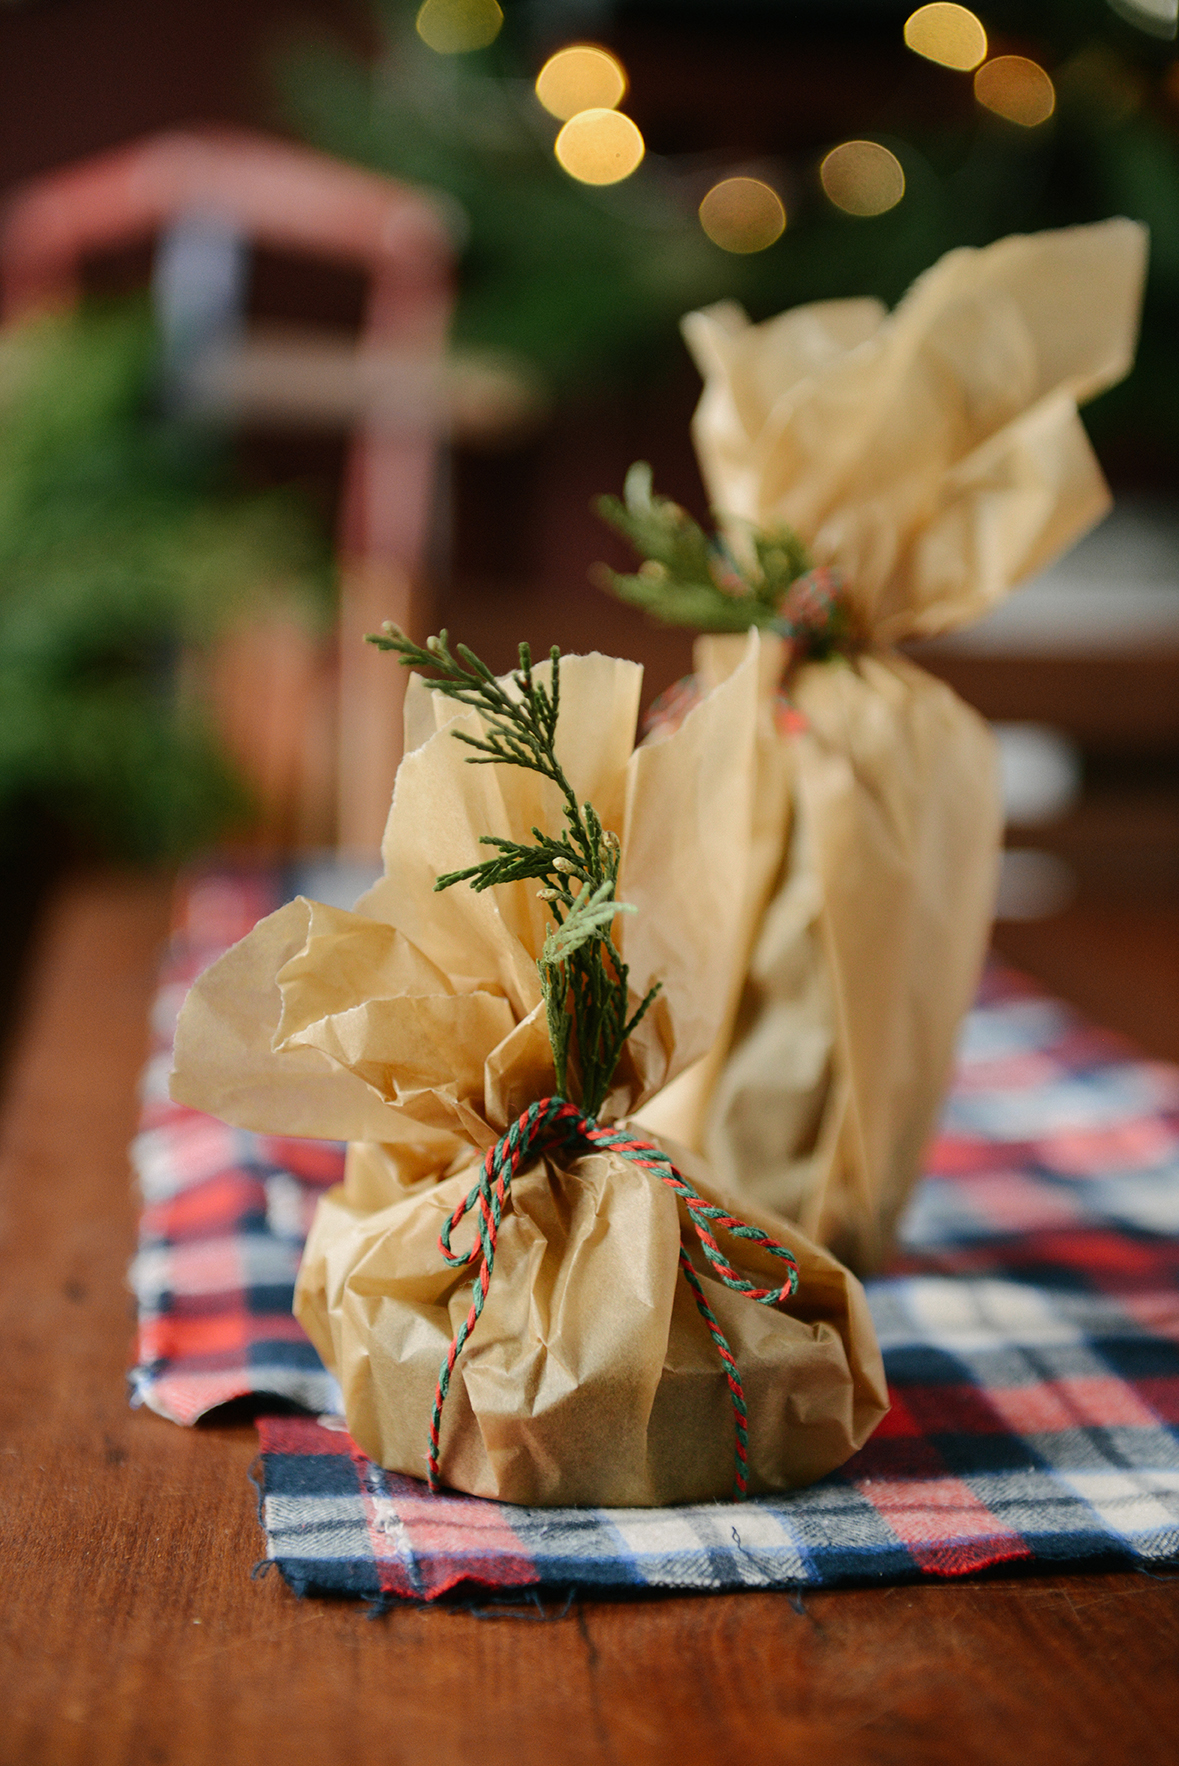 Homemade Gifts for the Holidays